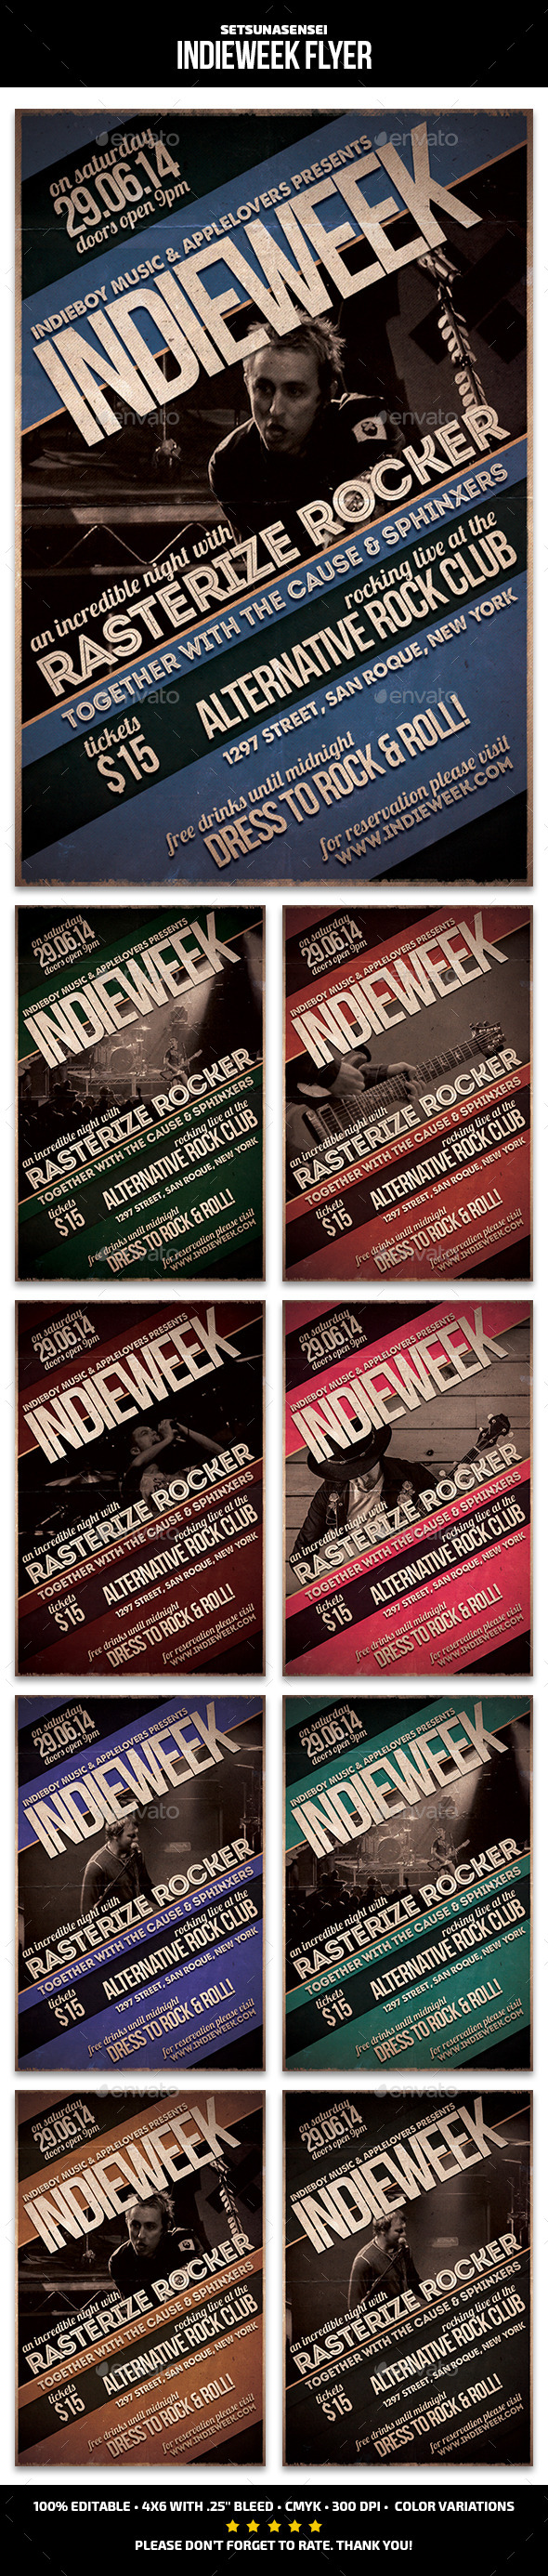 GraphicRiver Indie Week Flyer 9619280